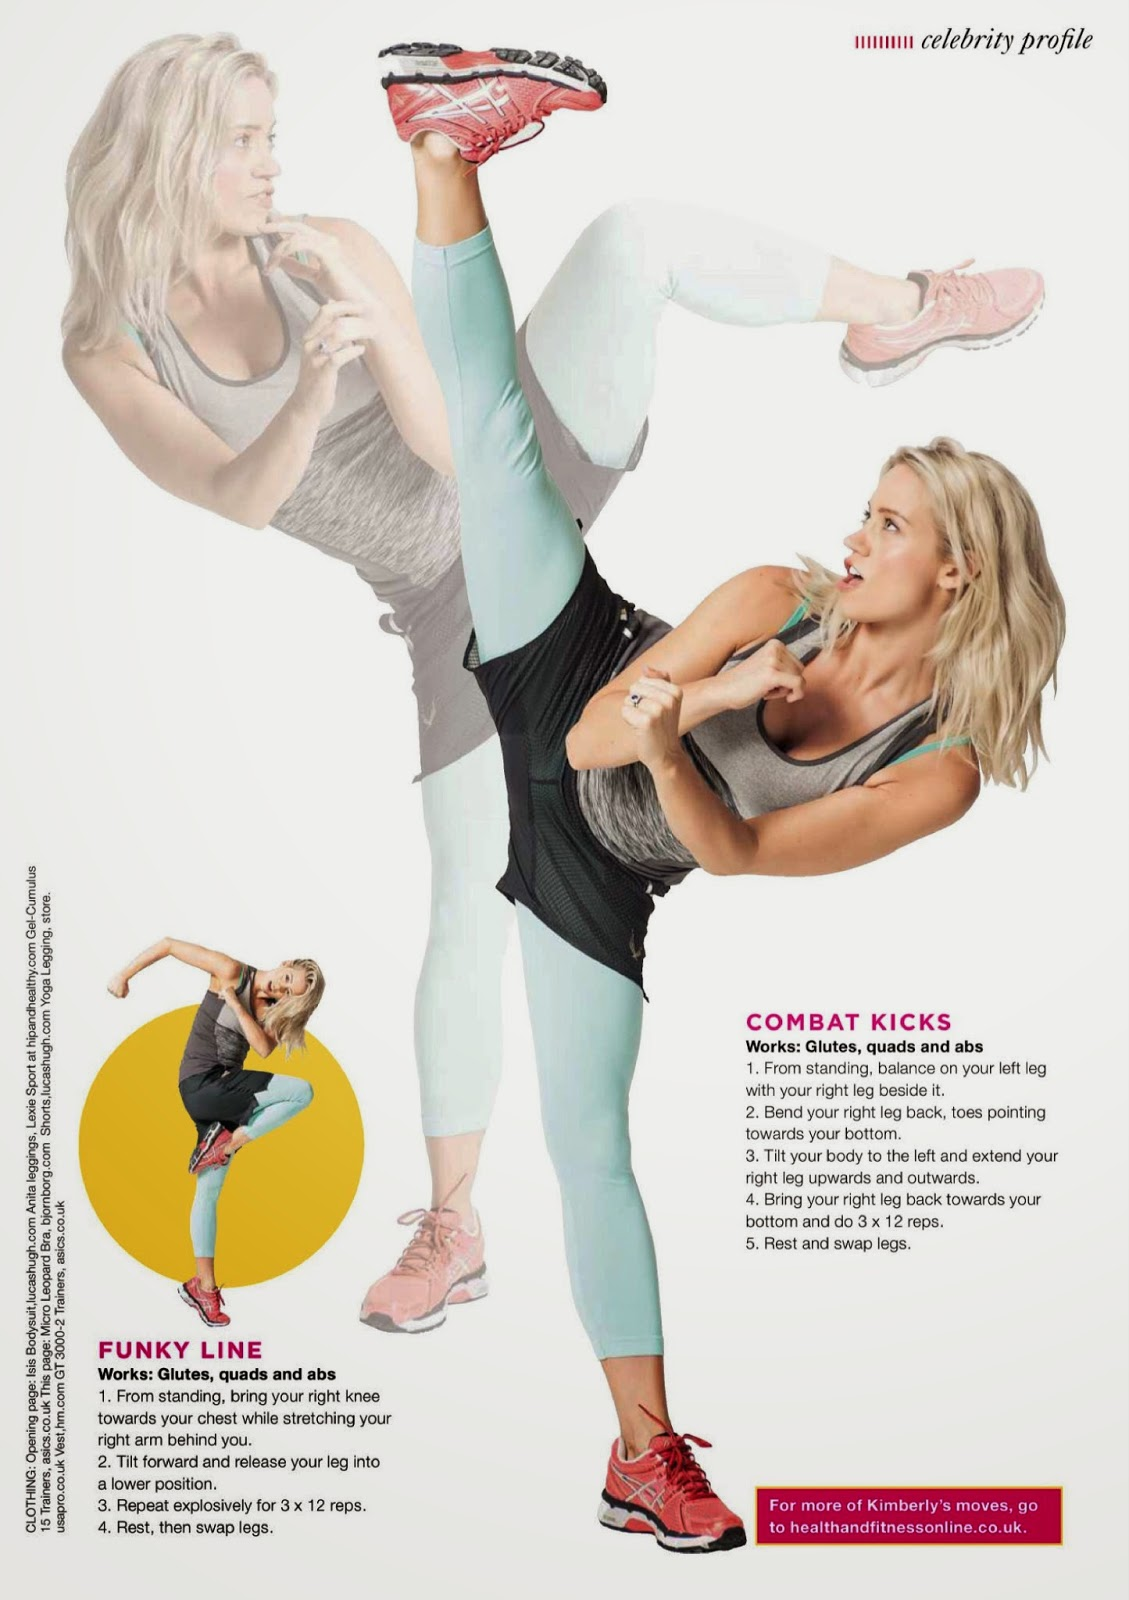 Fitness Magazine September